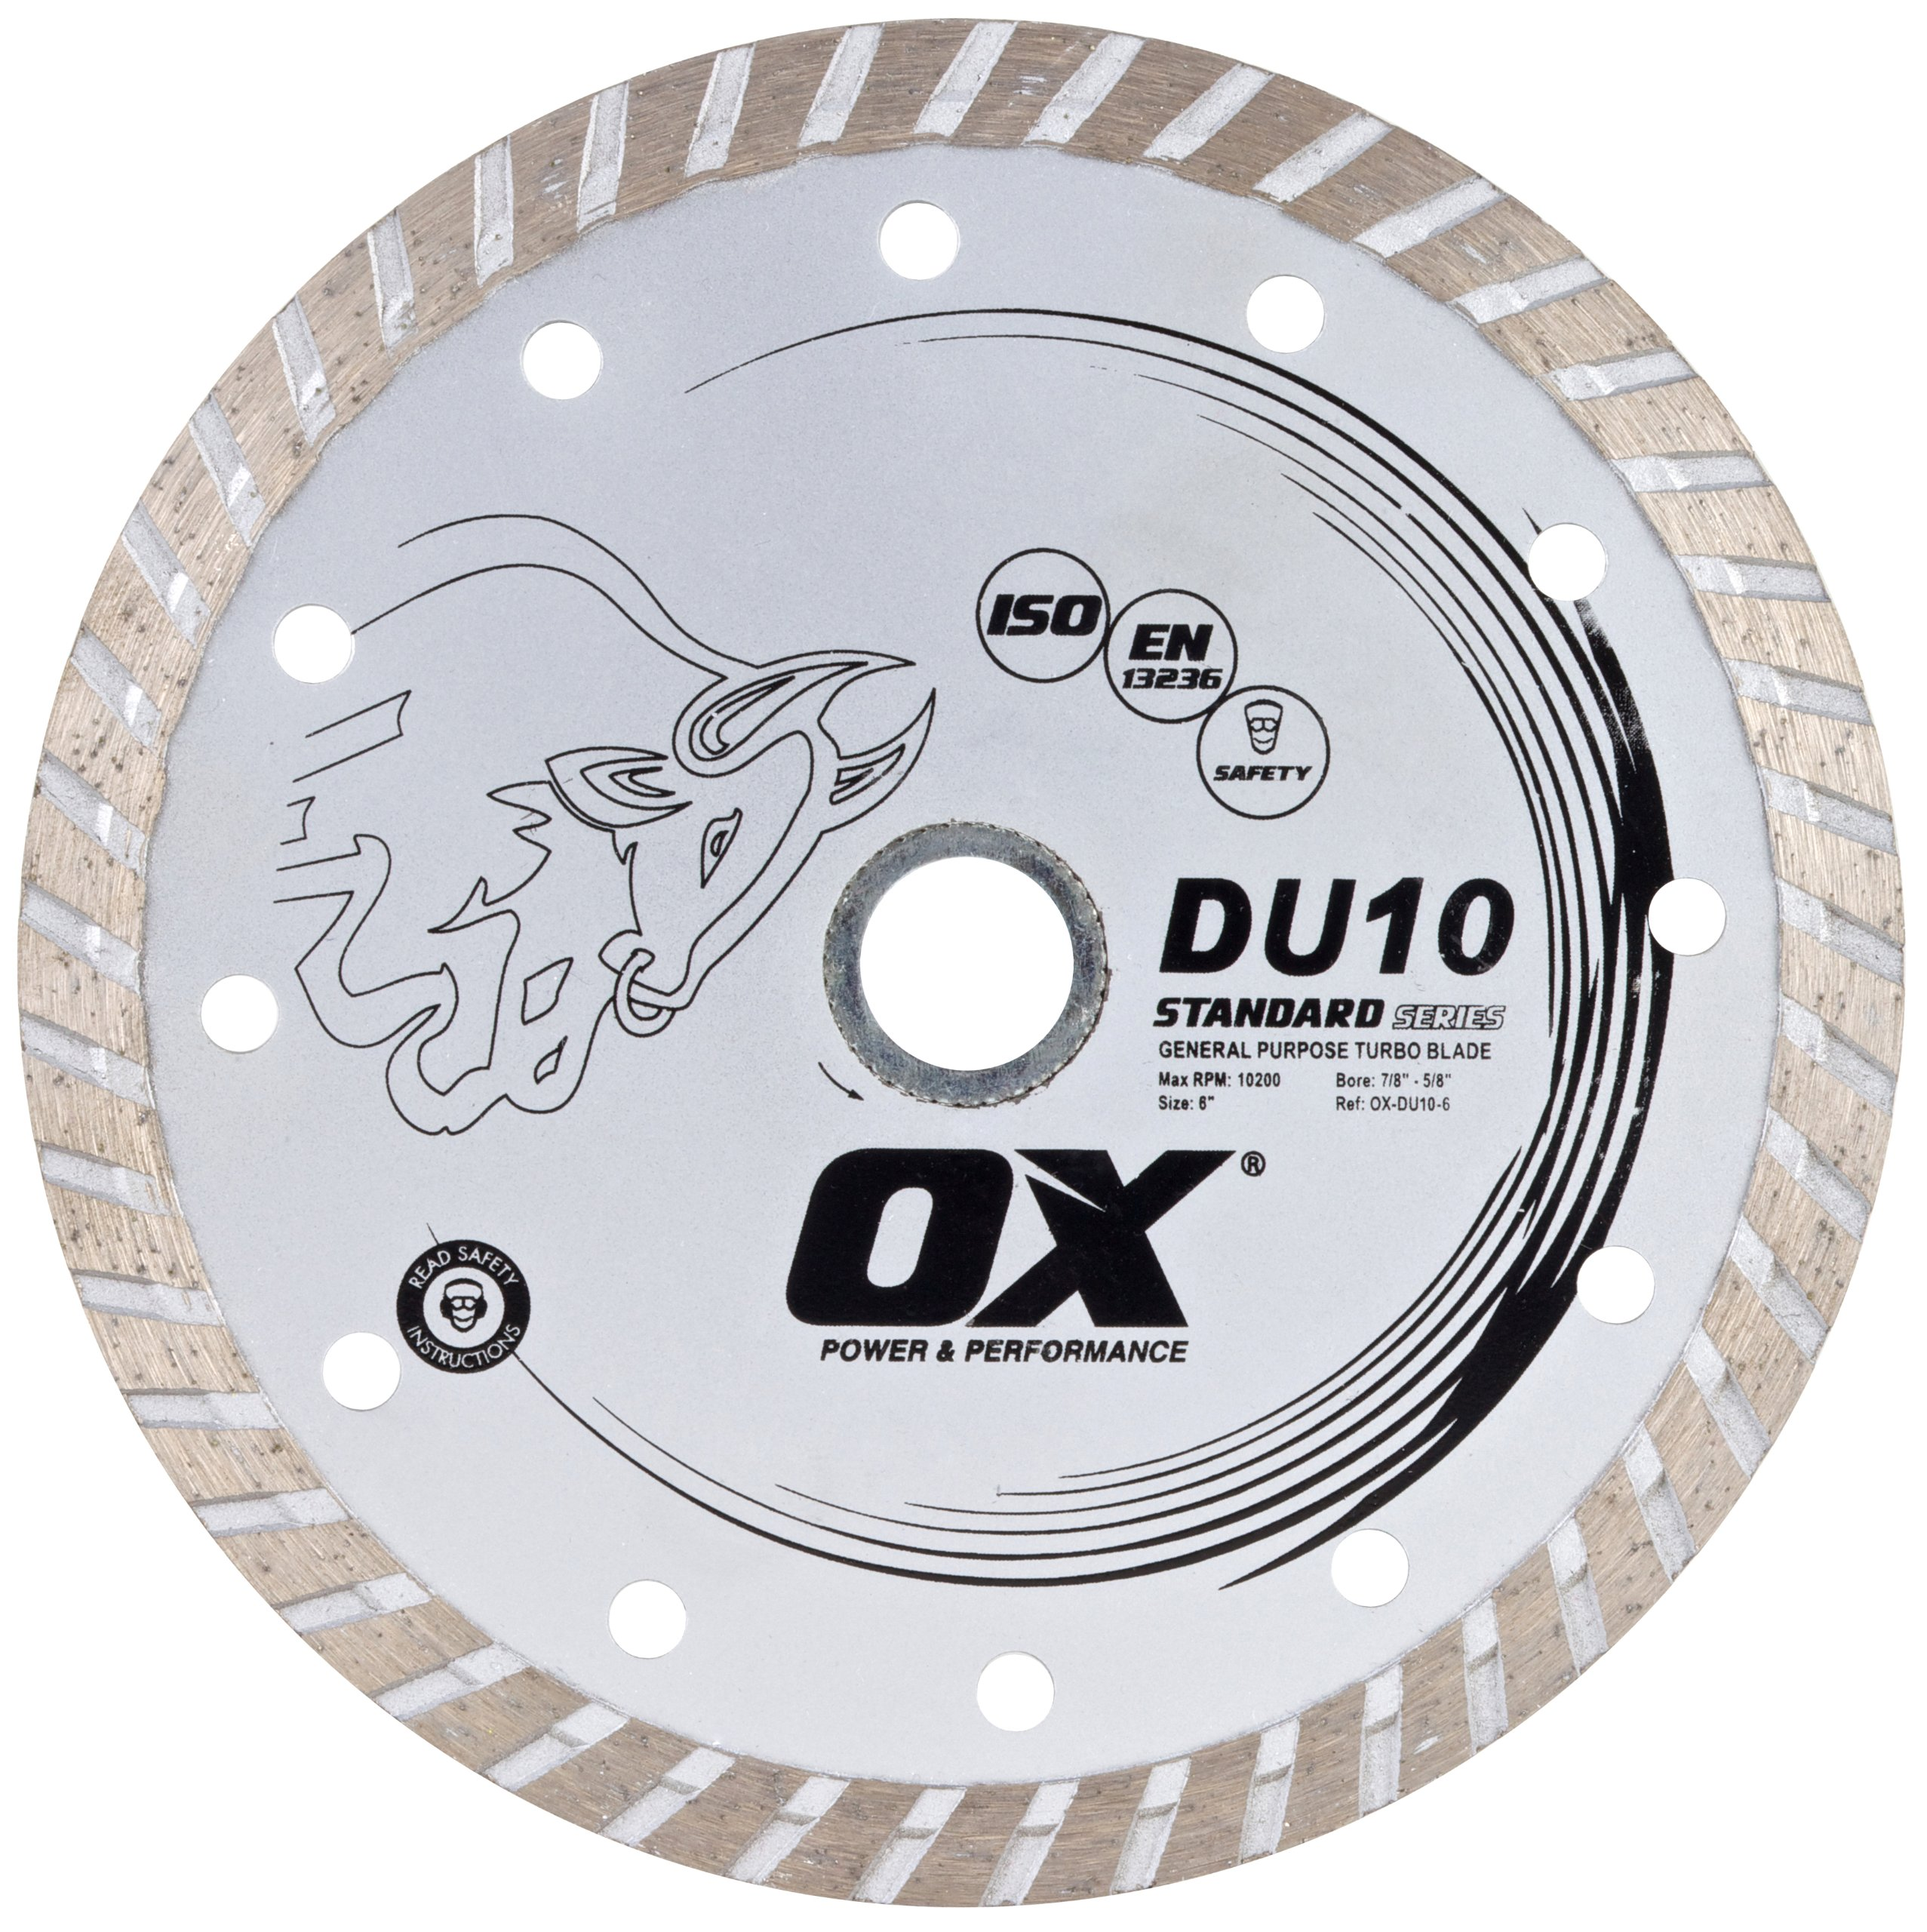 Disco de Diamante OX TOOLS OX-DU10-4.5 estándar de uso general Turbo de 4.5 pulg.